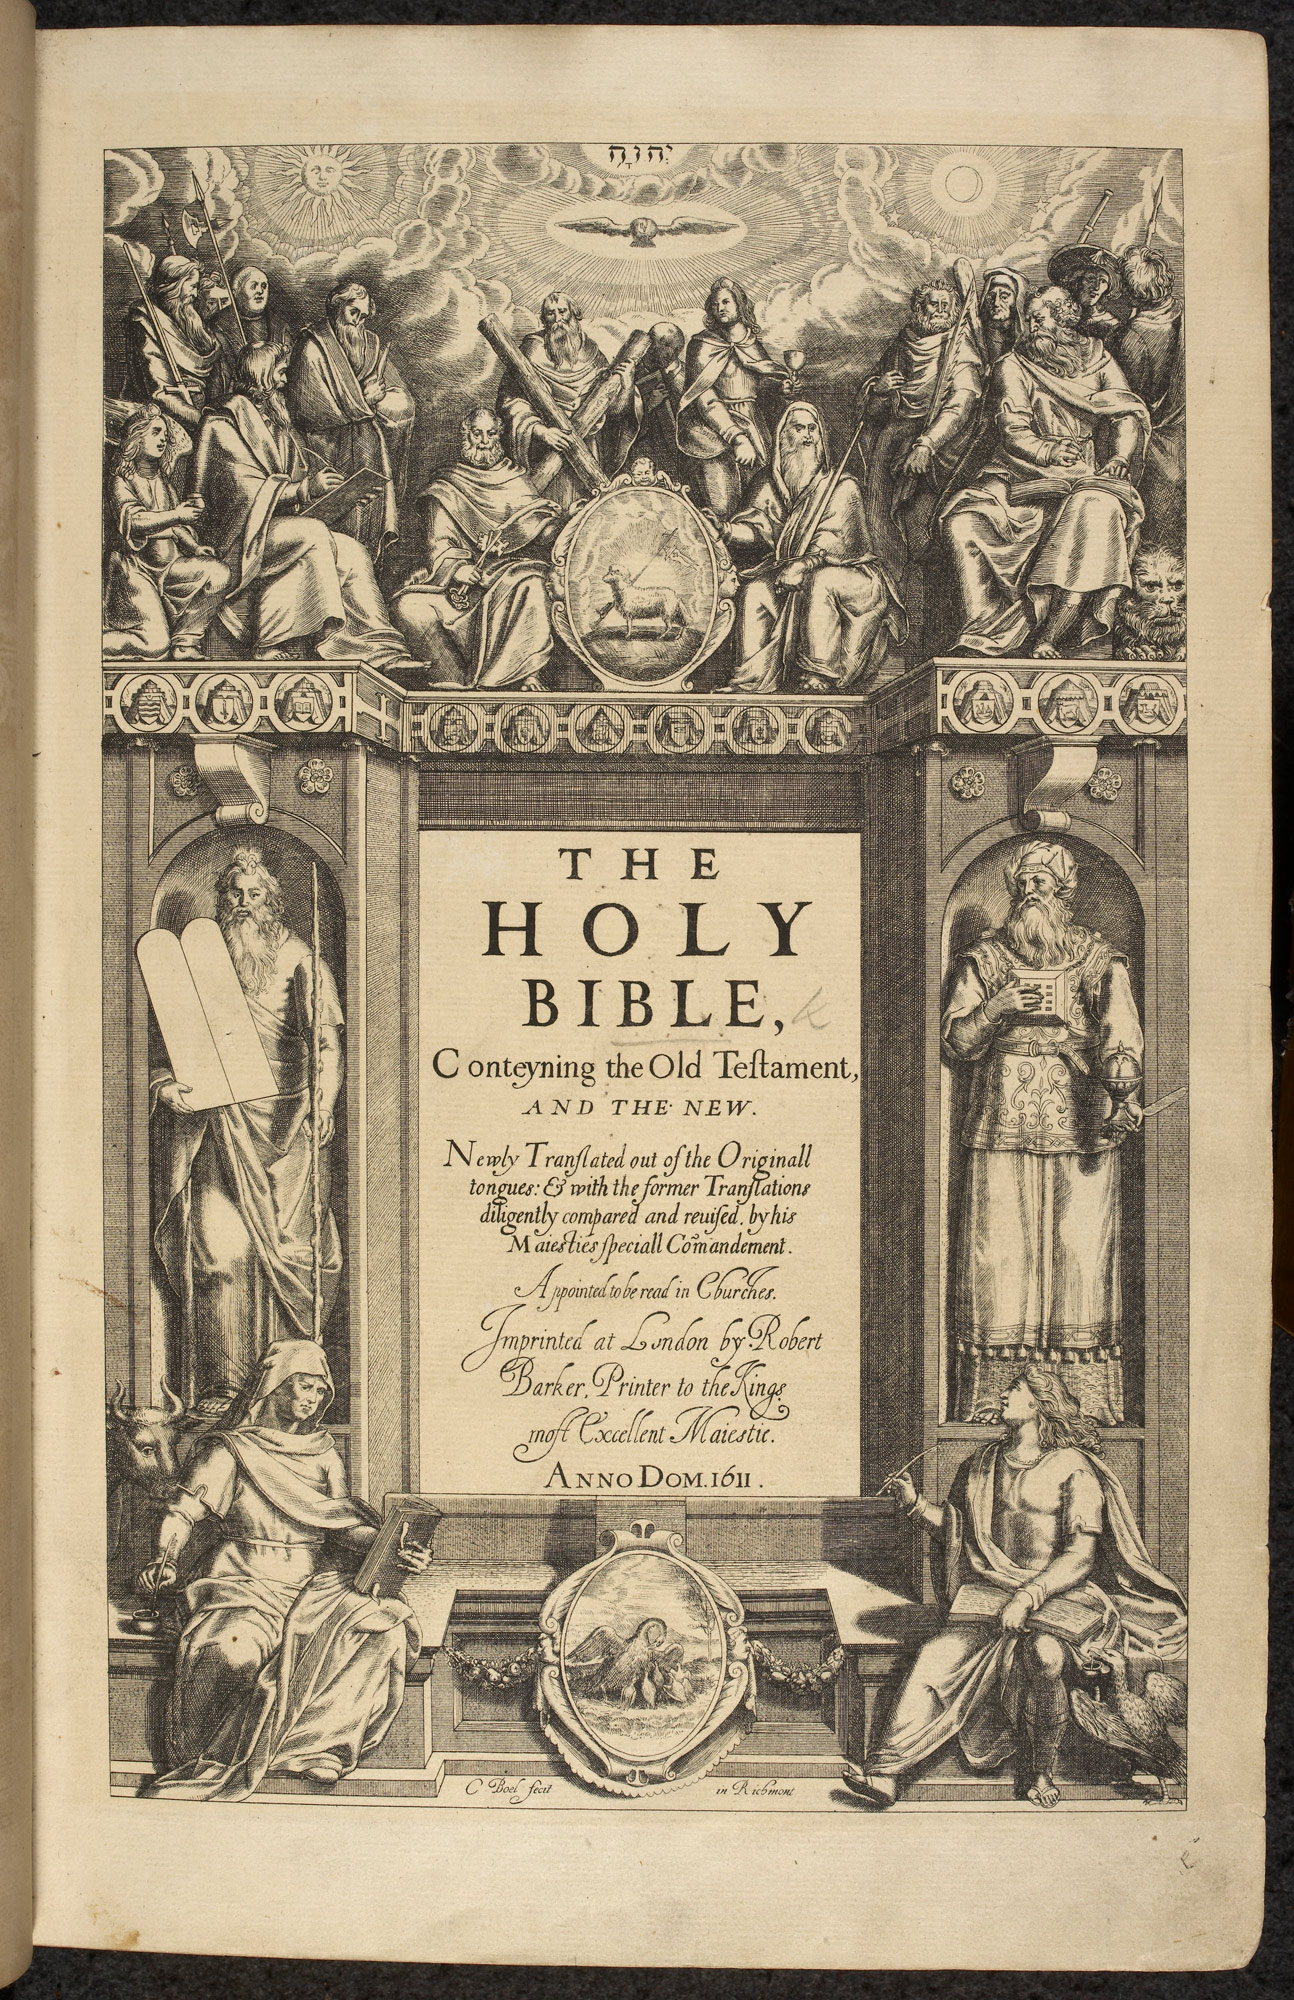 Frontispiece of King James Bible